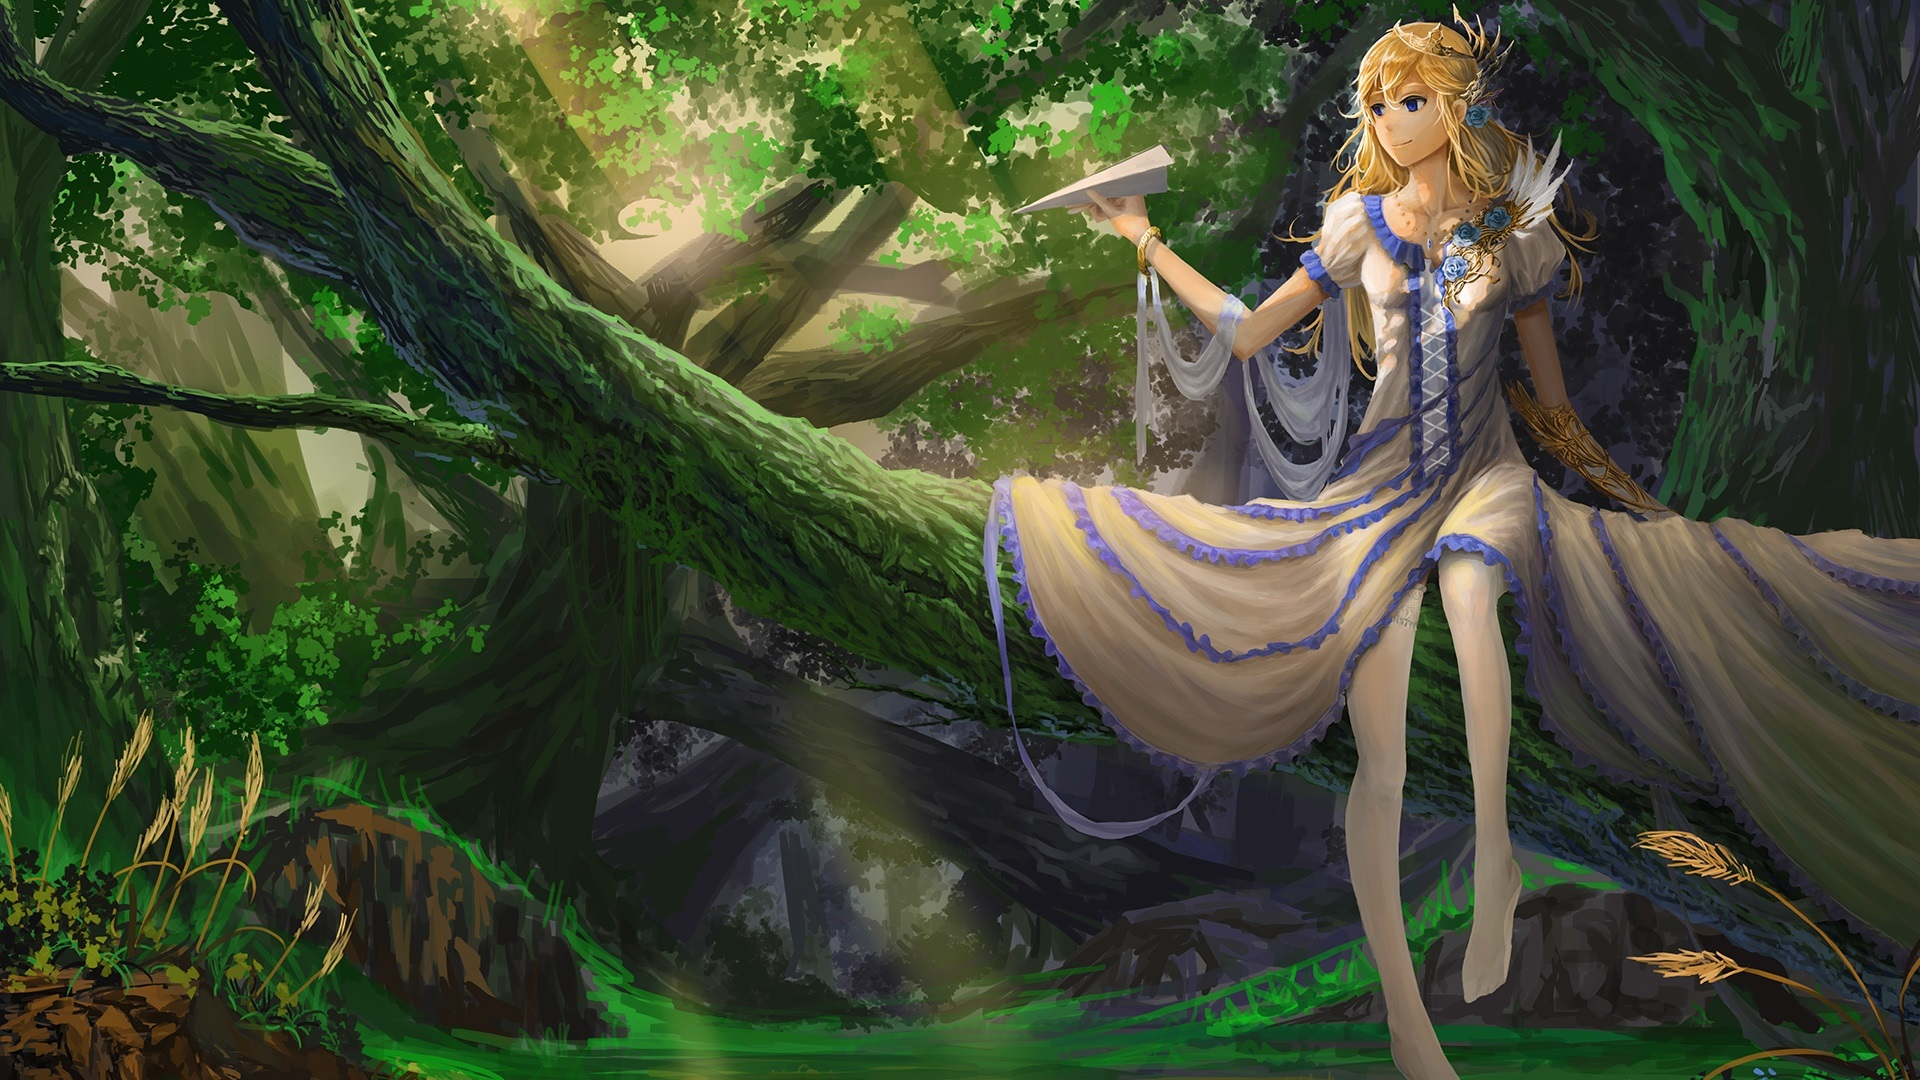 Most Inspiring Wallpaper Forest Girl - Beautiful-fantasy-girl-paper-airplane-tree-forest_1920x1080  Image_557511 .jpg